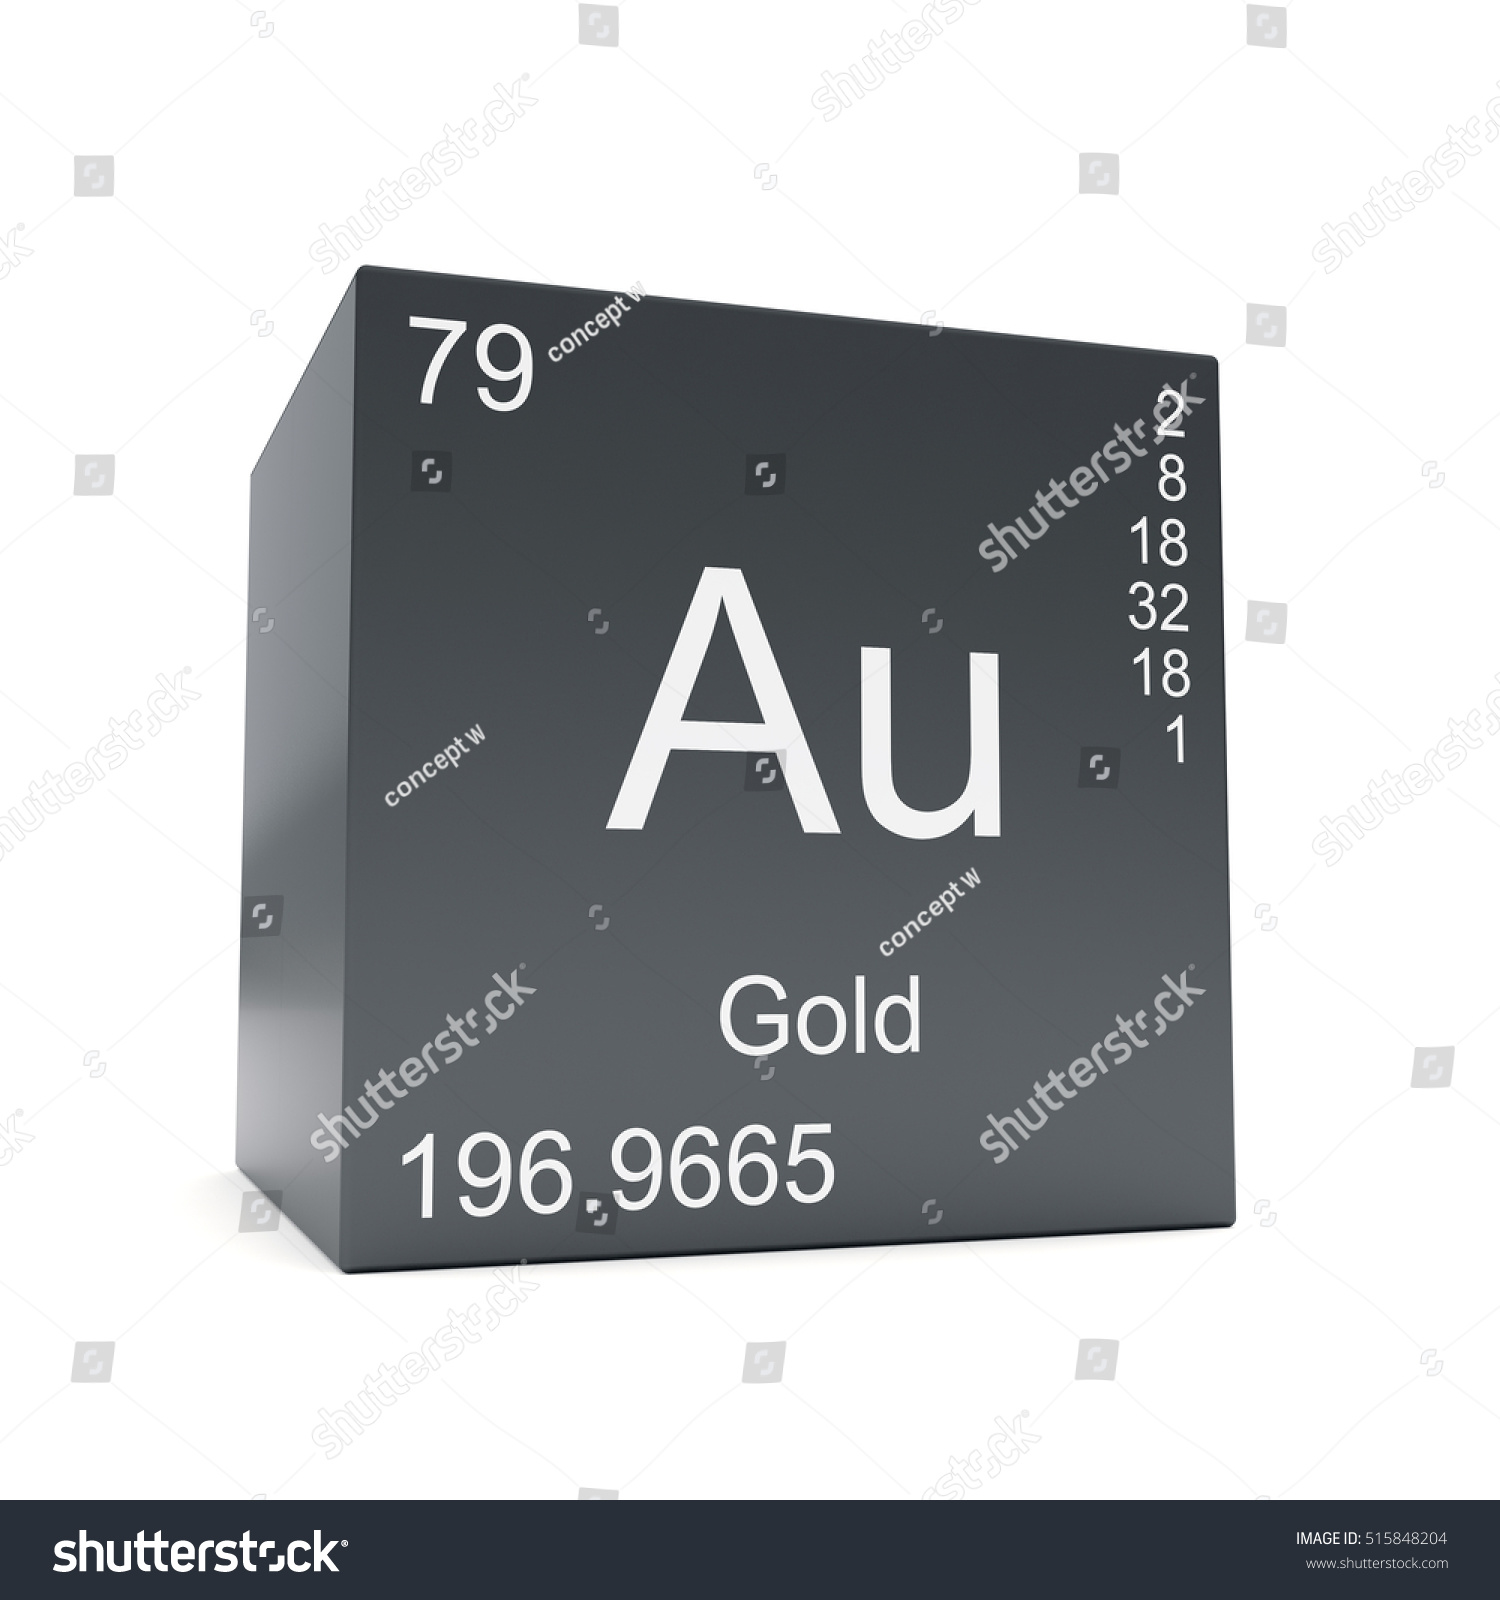 Chemical symbol for gold on periodic table image collections chemical symbol for gold on periodic table gallery periodic periodic table symbol for gold choice image gamestrikefo Gallery